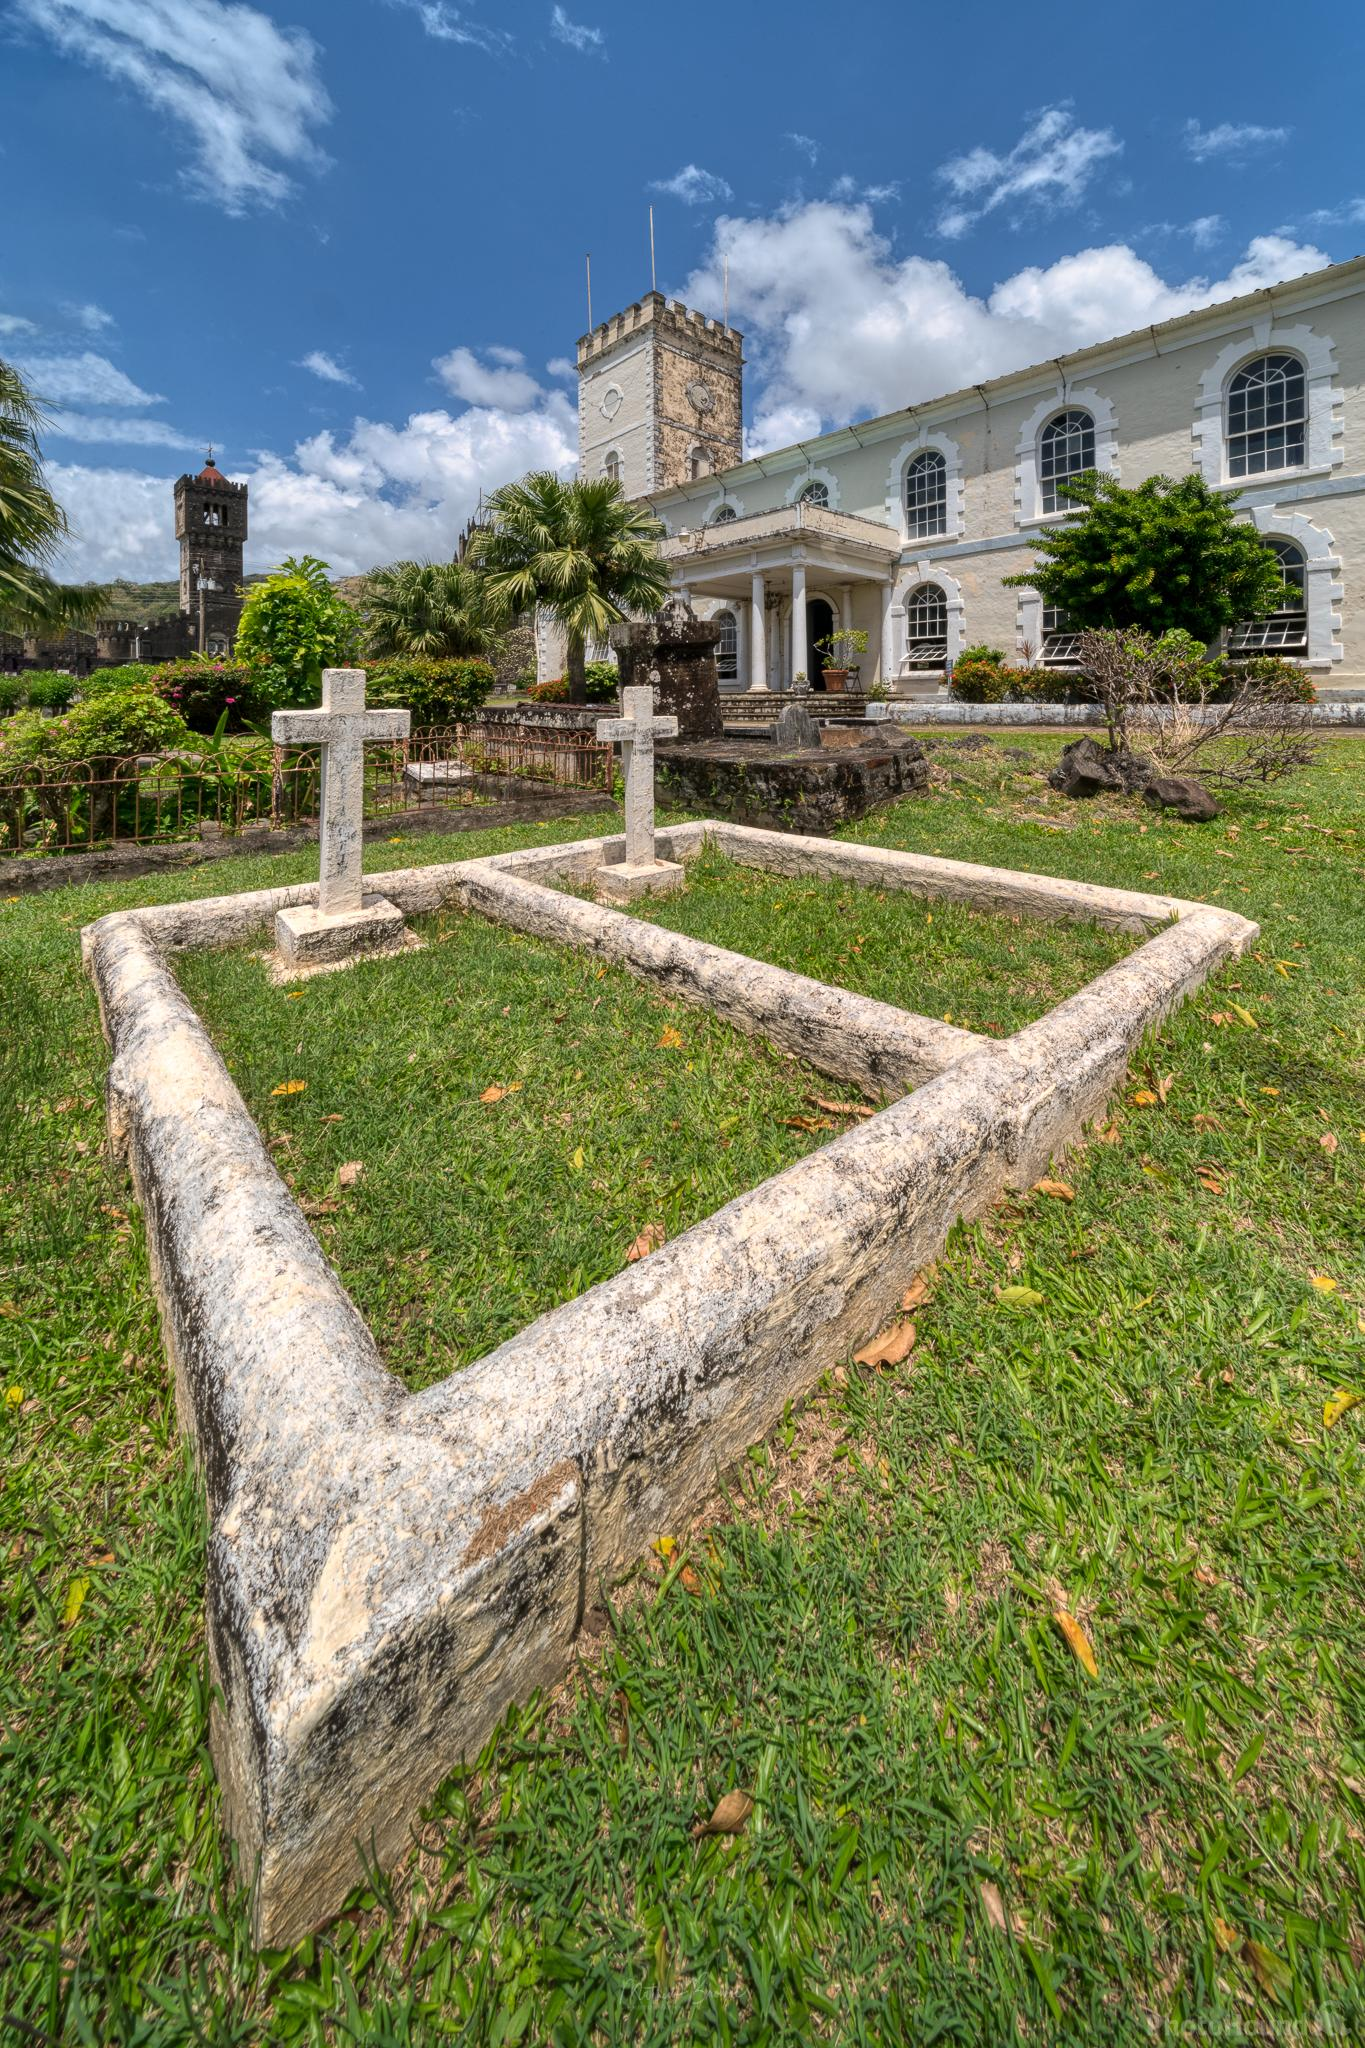 Saint Vincent and the Grenadines photo locations